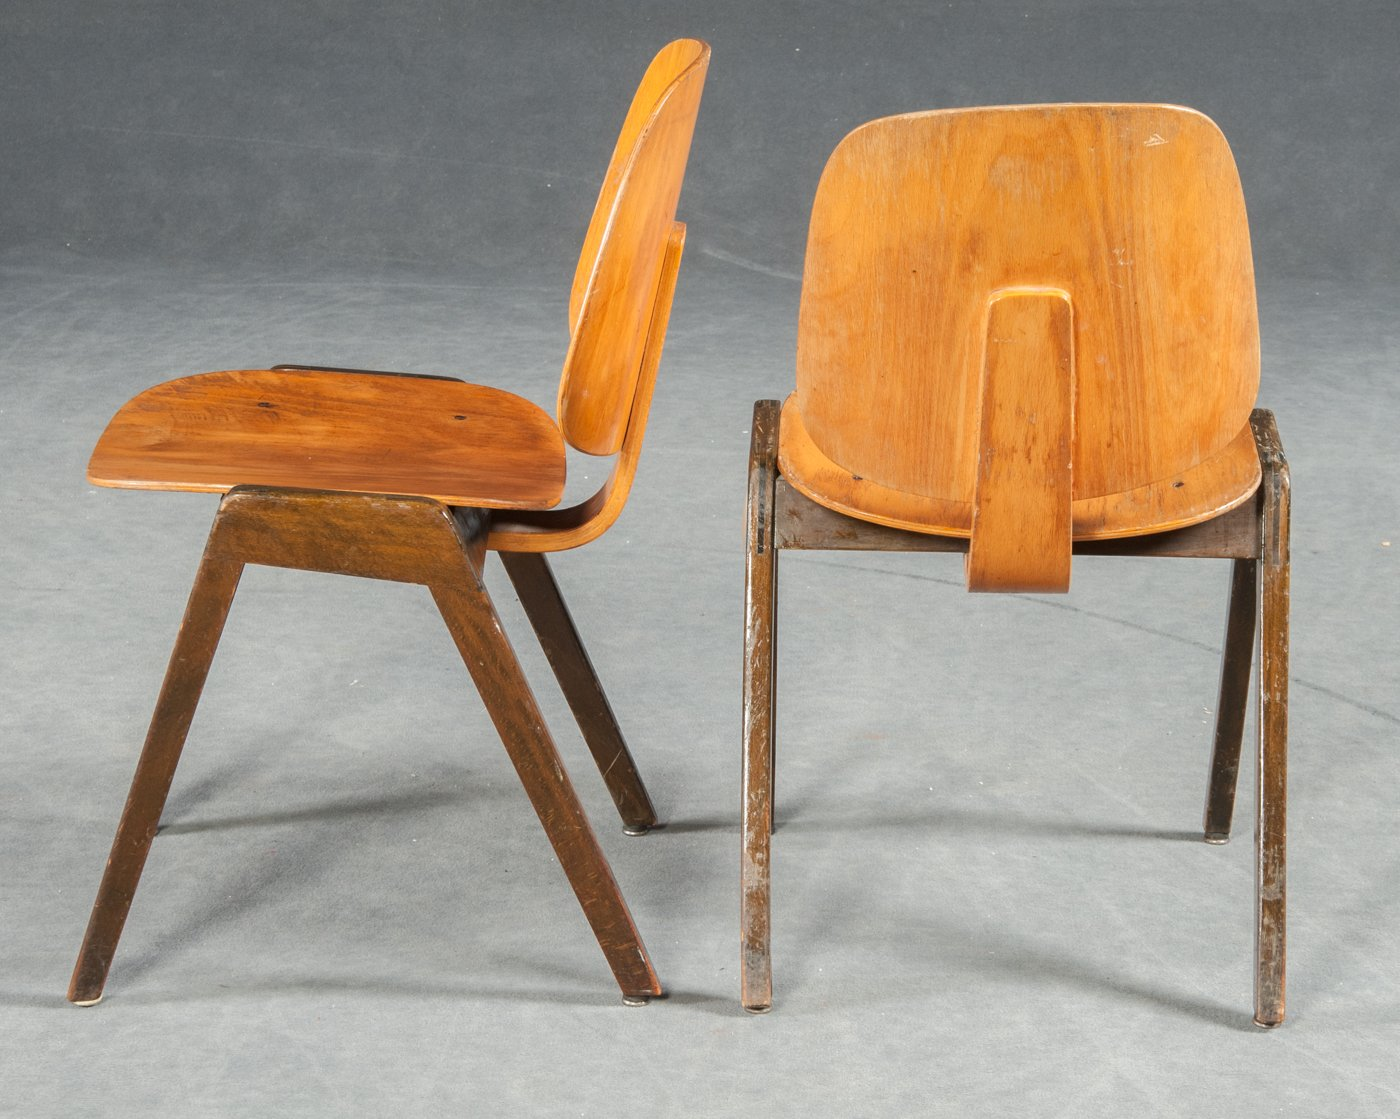 vintage bentwood chairs from thonet set of 3